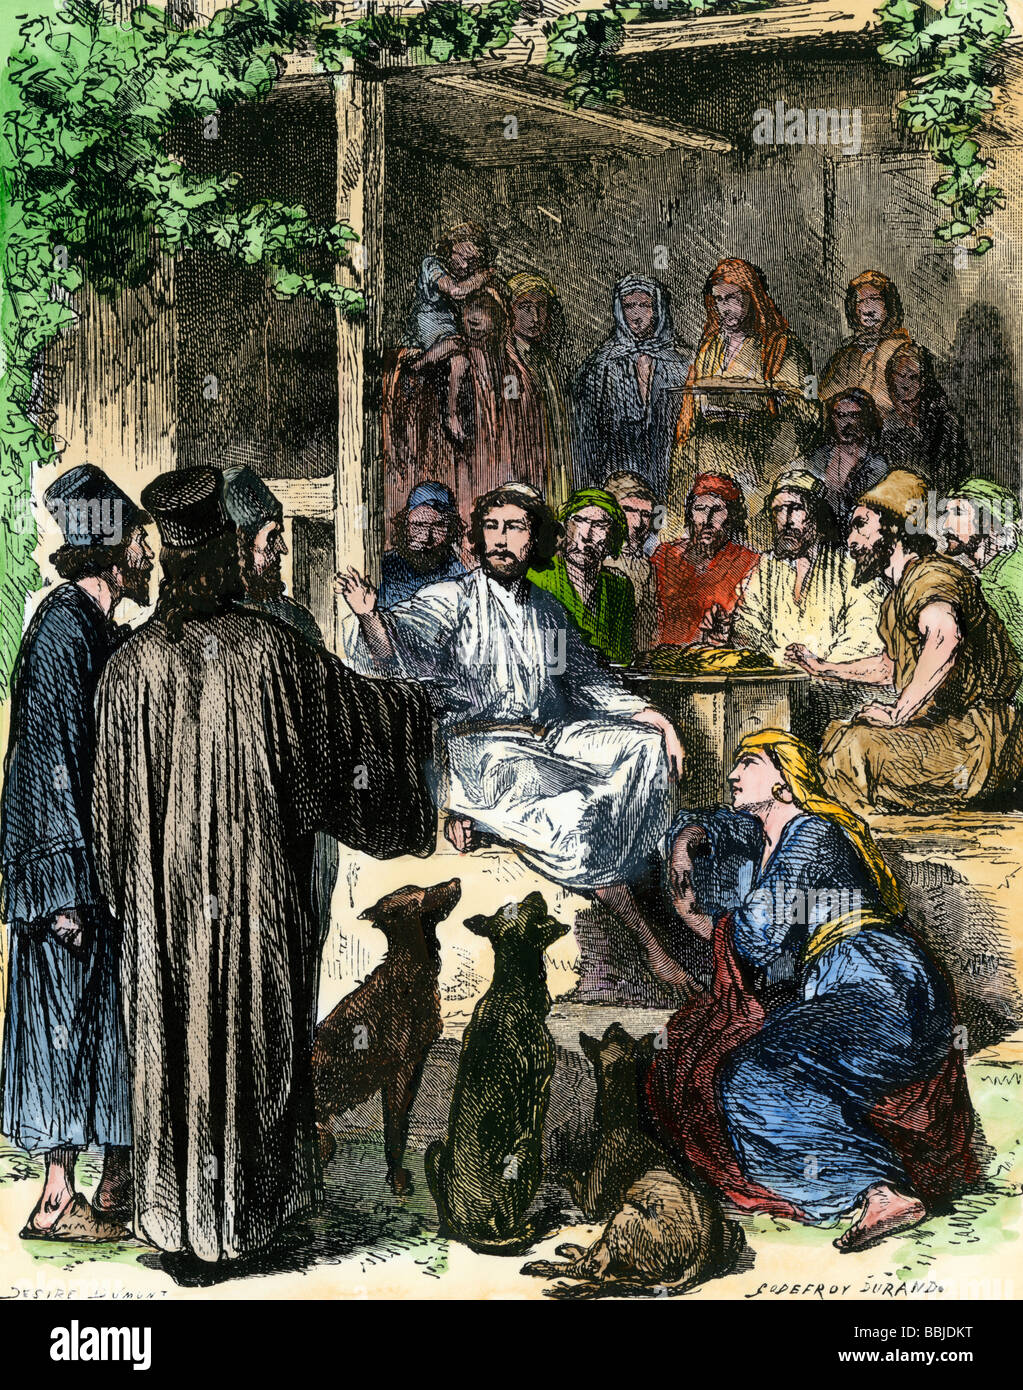 Jesus eating with sinners and tax collectors in Jerusalem. Hand-colored woodcut - Stock Image